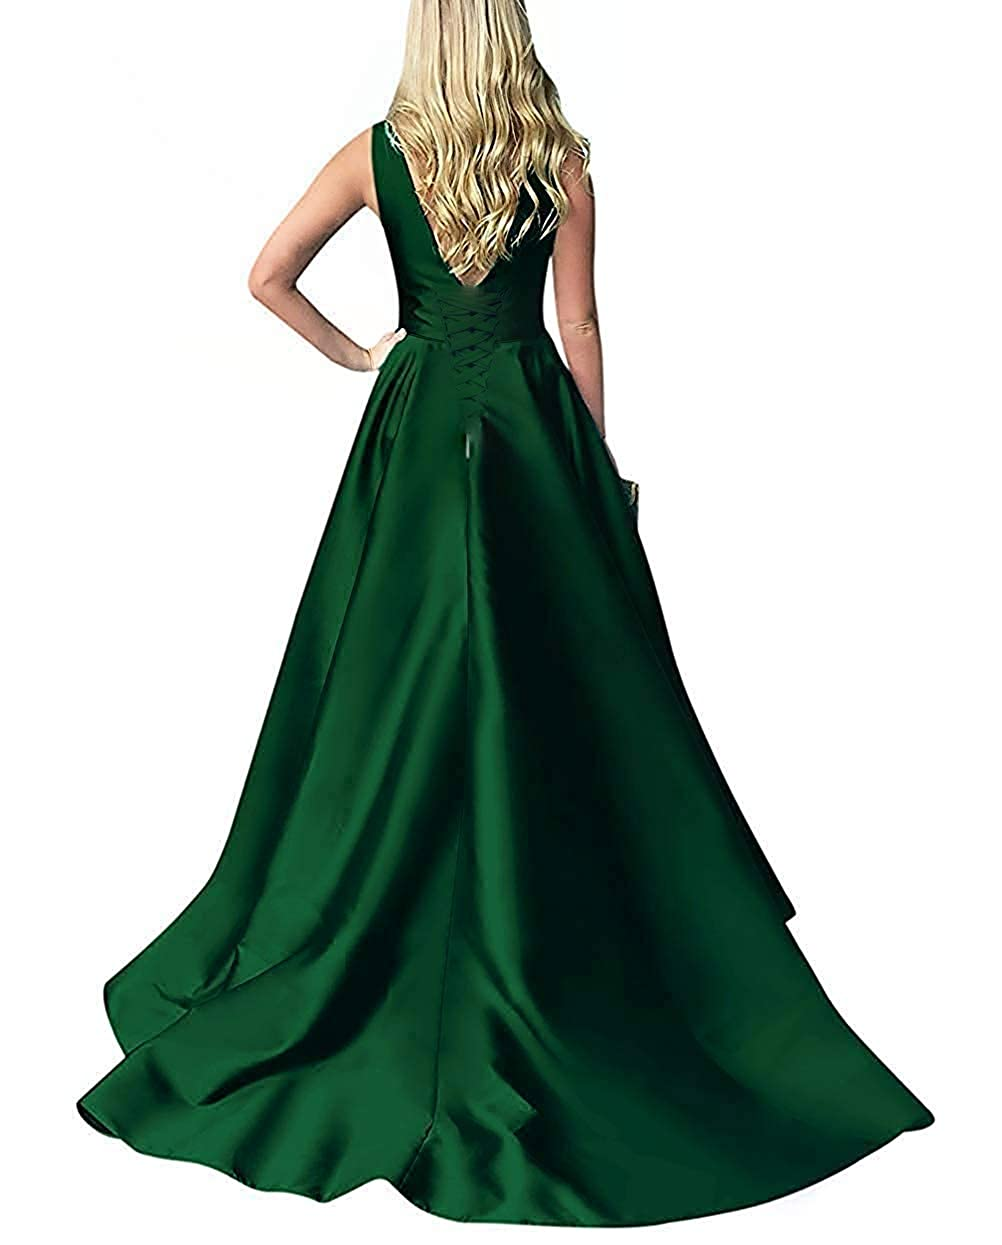 ANGELWARDROBE Satin Off The Shoulder Formal Evening Dress for Women Long Party Prom Ball Gown